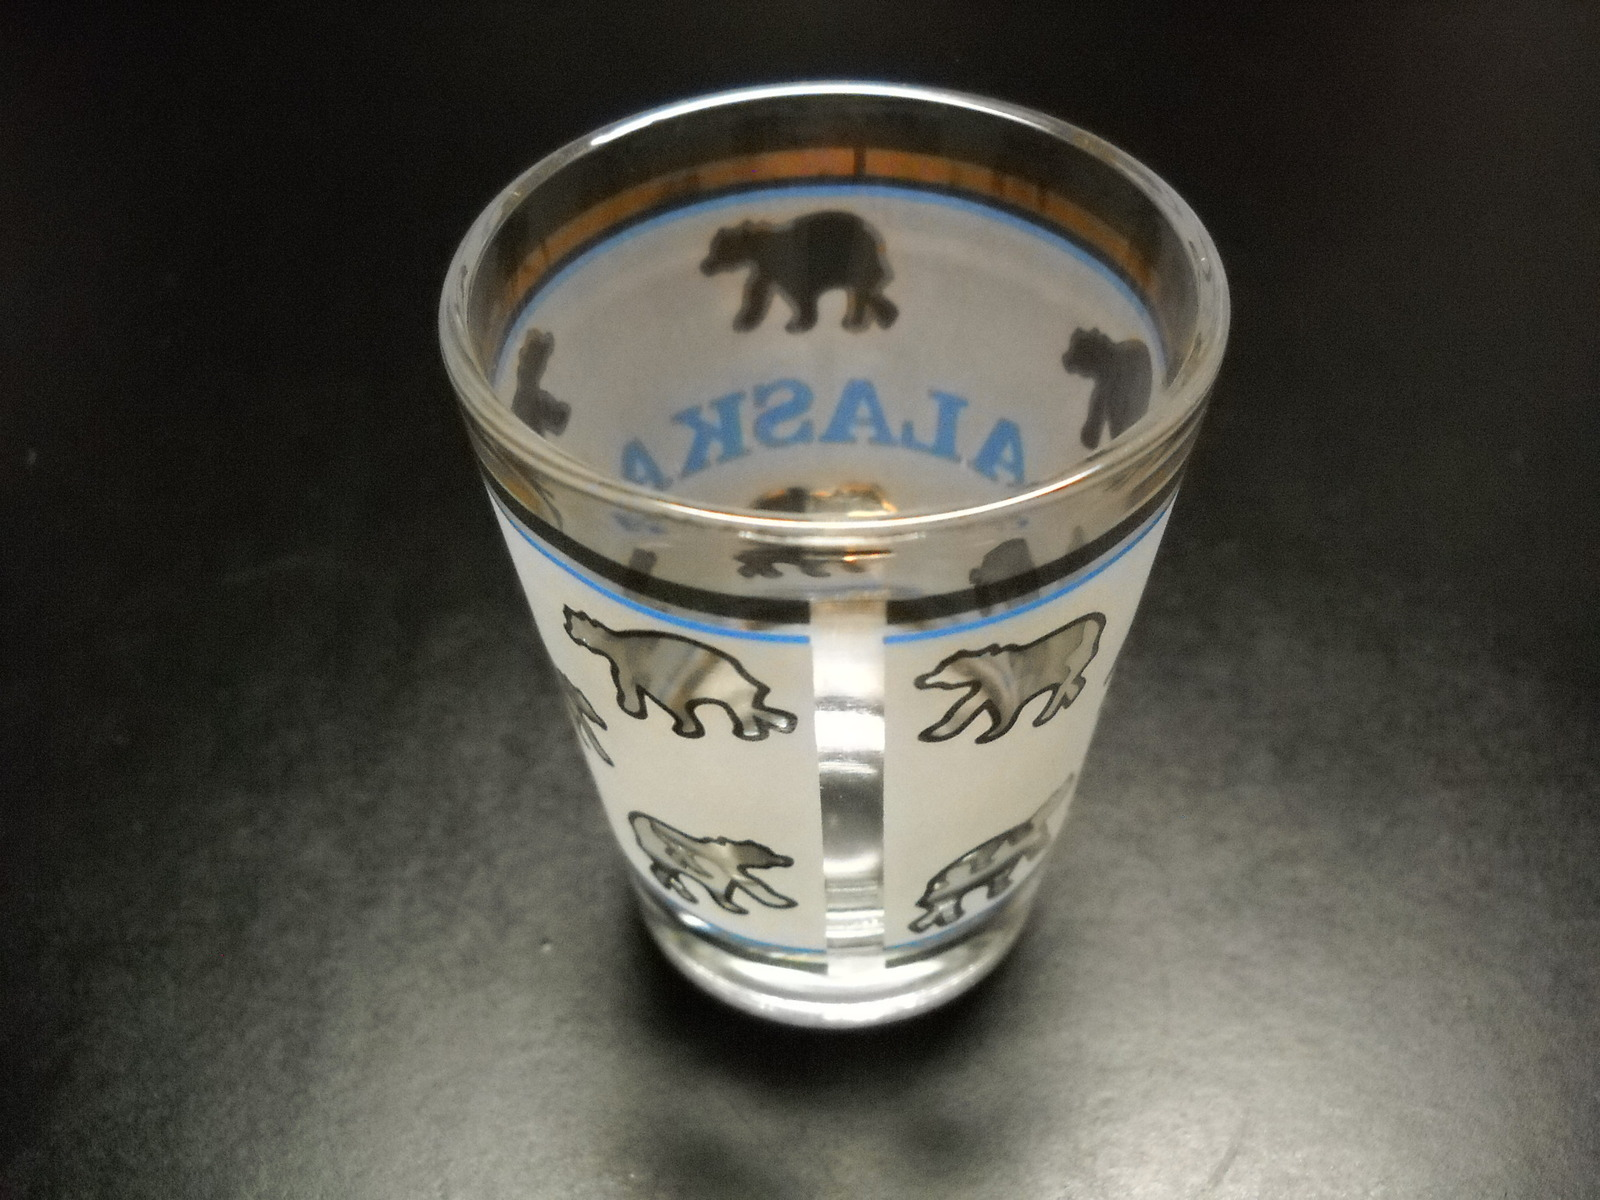 Alaska Shot Glass Frosted Wrap Around with Blue Accents and Whole Lot of Bears